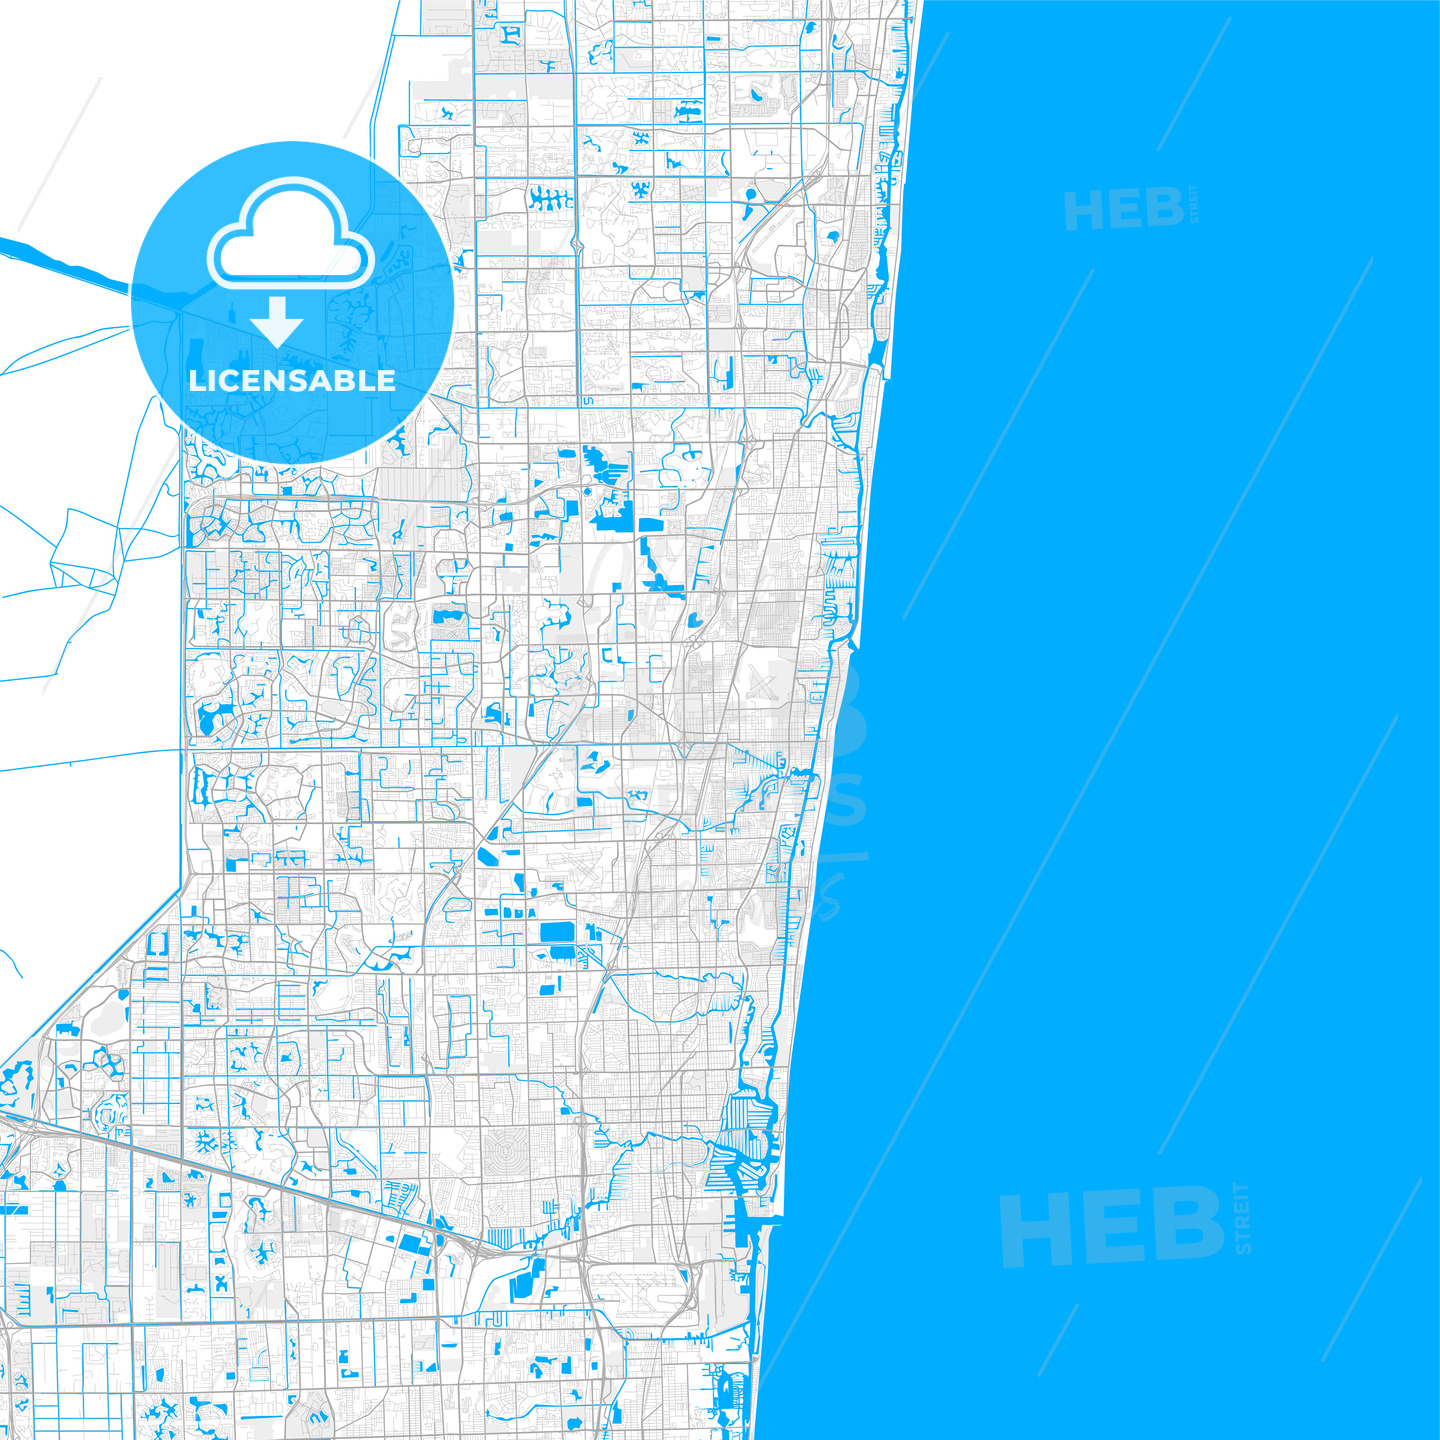 Map Of Pompano Beach Florida Rich detailed vector map of Pompano Beach, Florida, USA